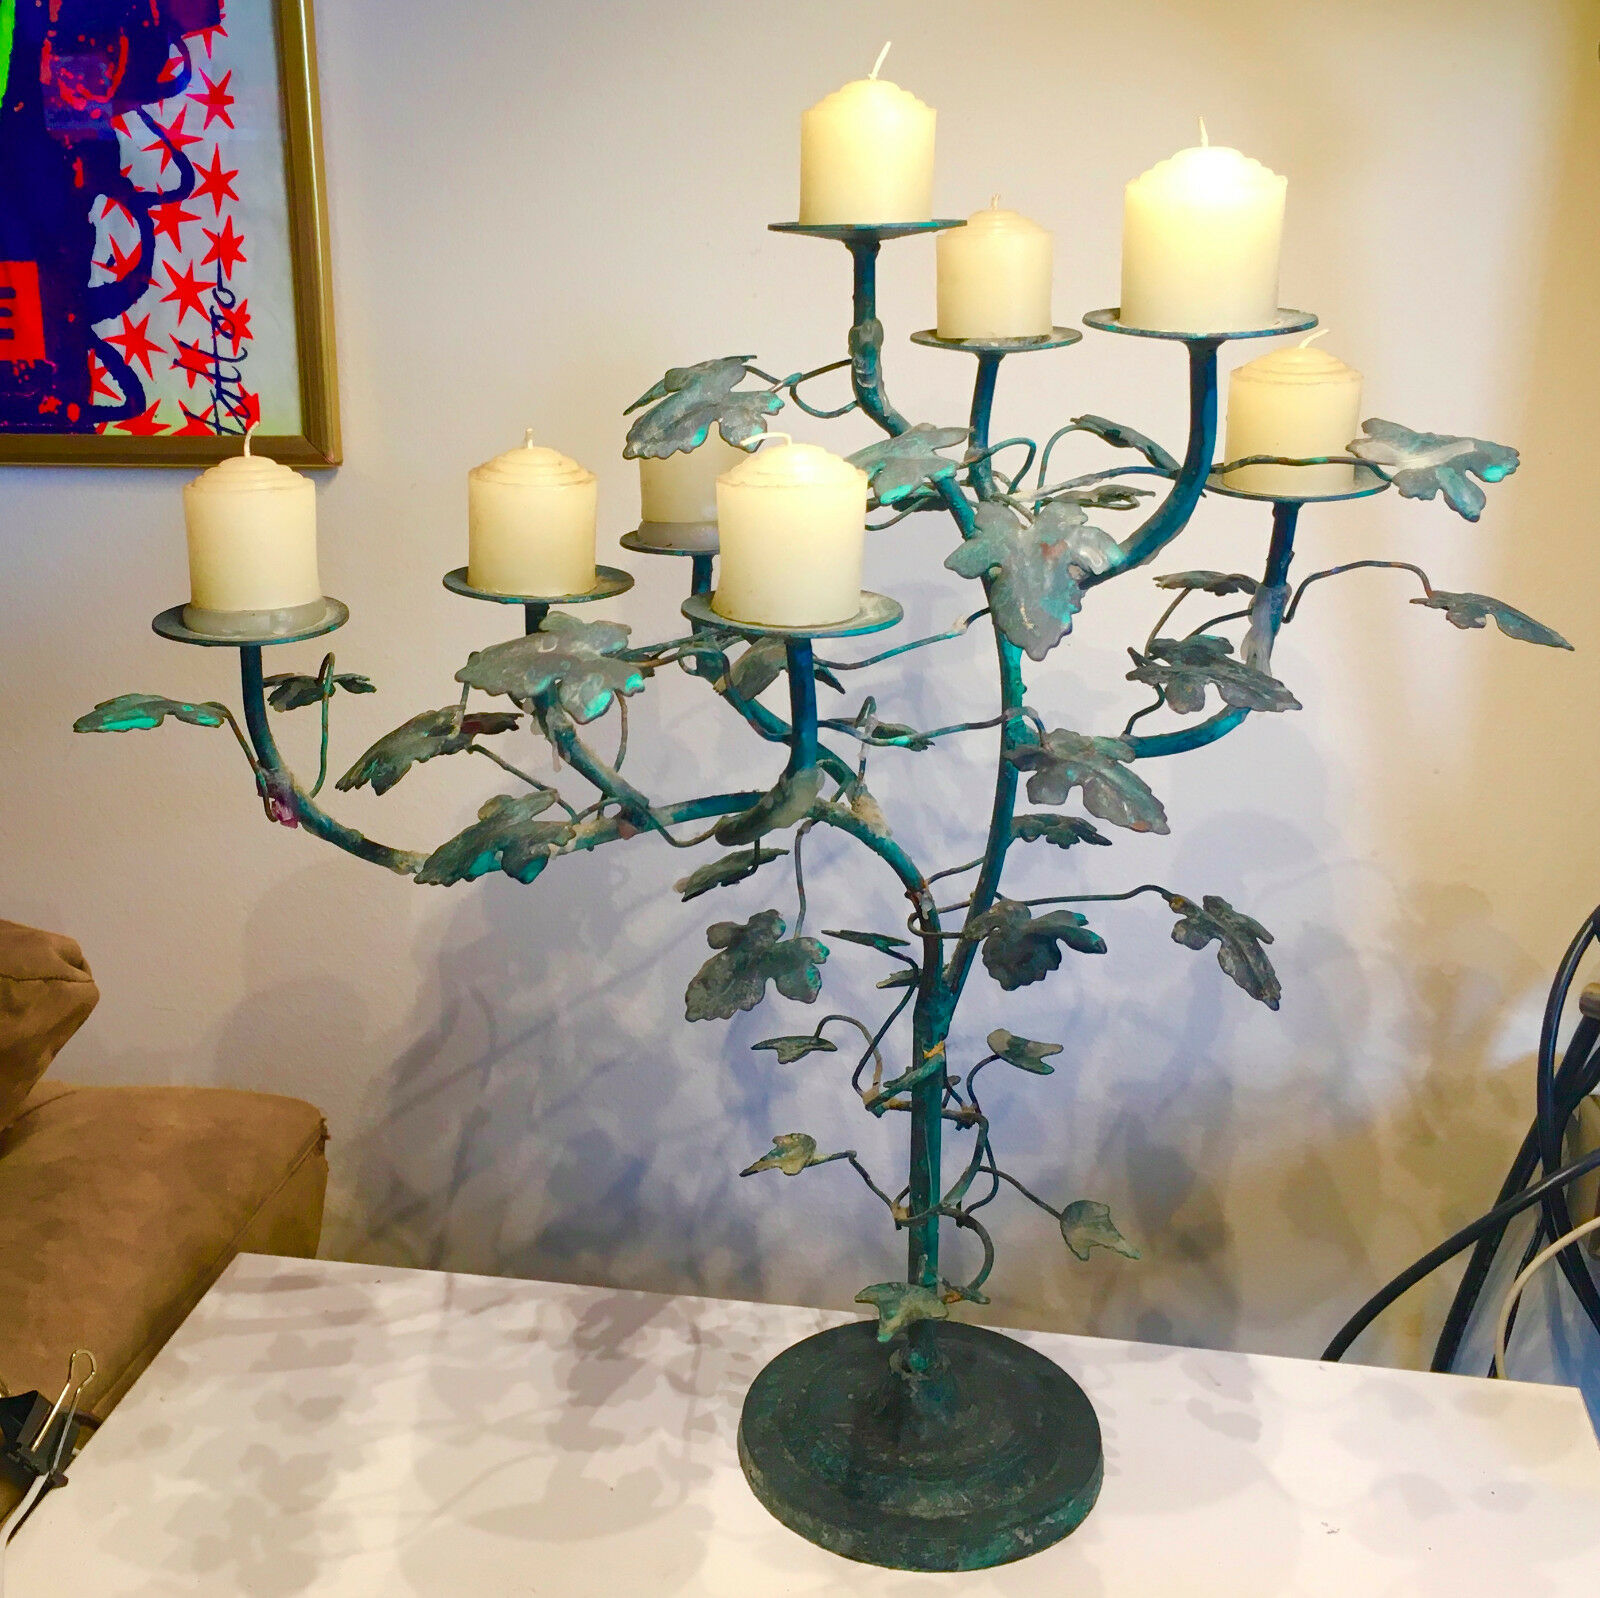 INCrotIBLE IVY TREE CANDLEABRA HOLDS 8 VOTIVE CANDLES OR LARGER BENDABLE LEAVES